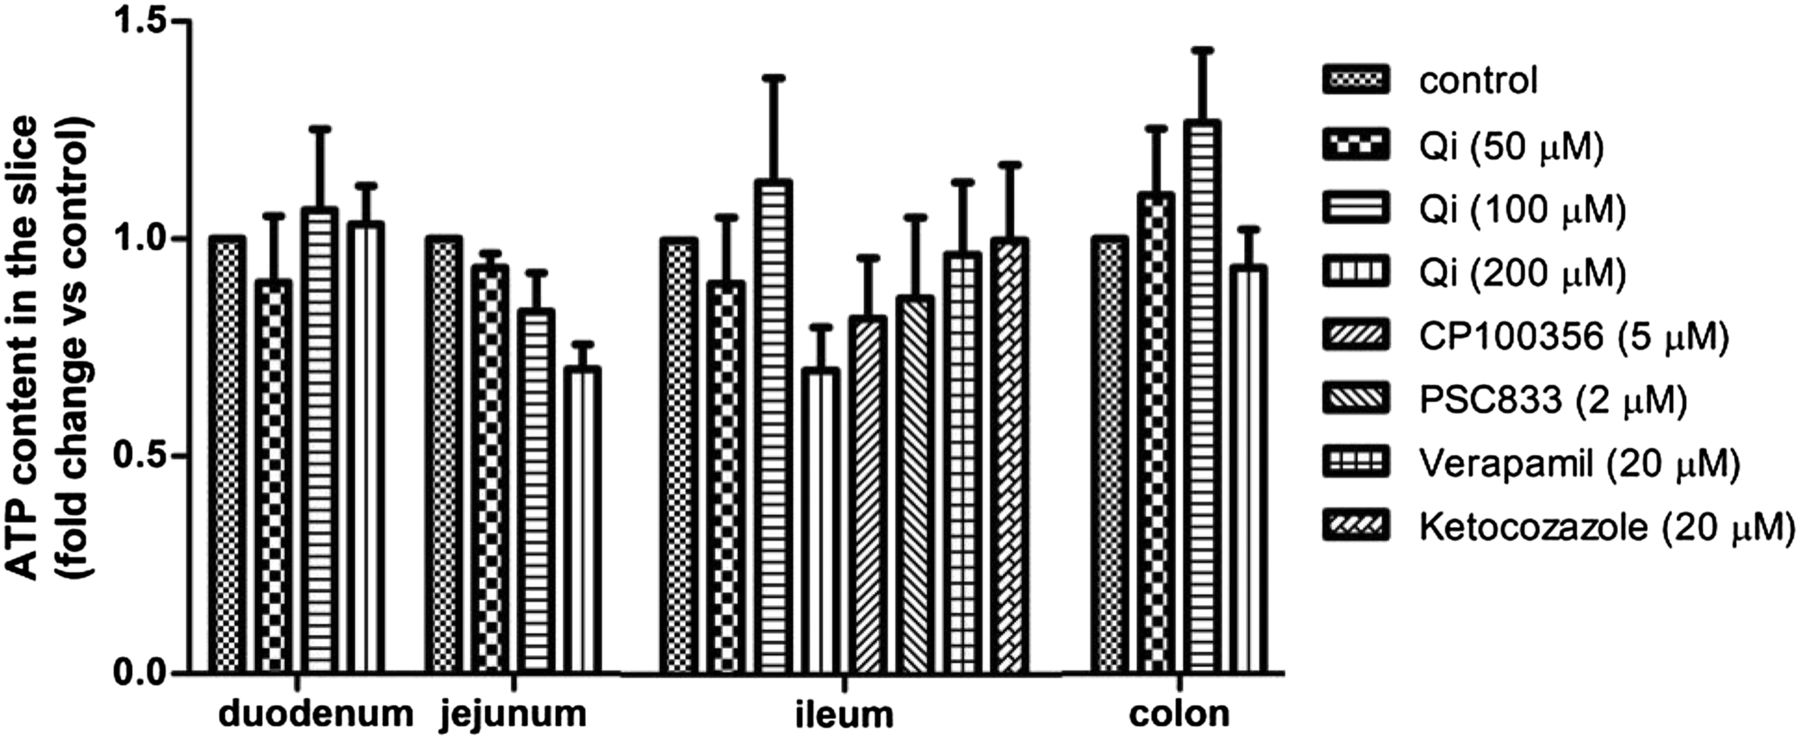 the consequence of drug u2013drug interactions influencing the interplay between p